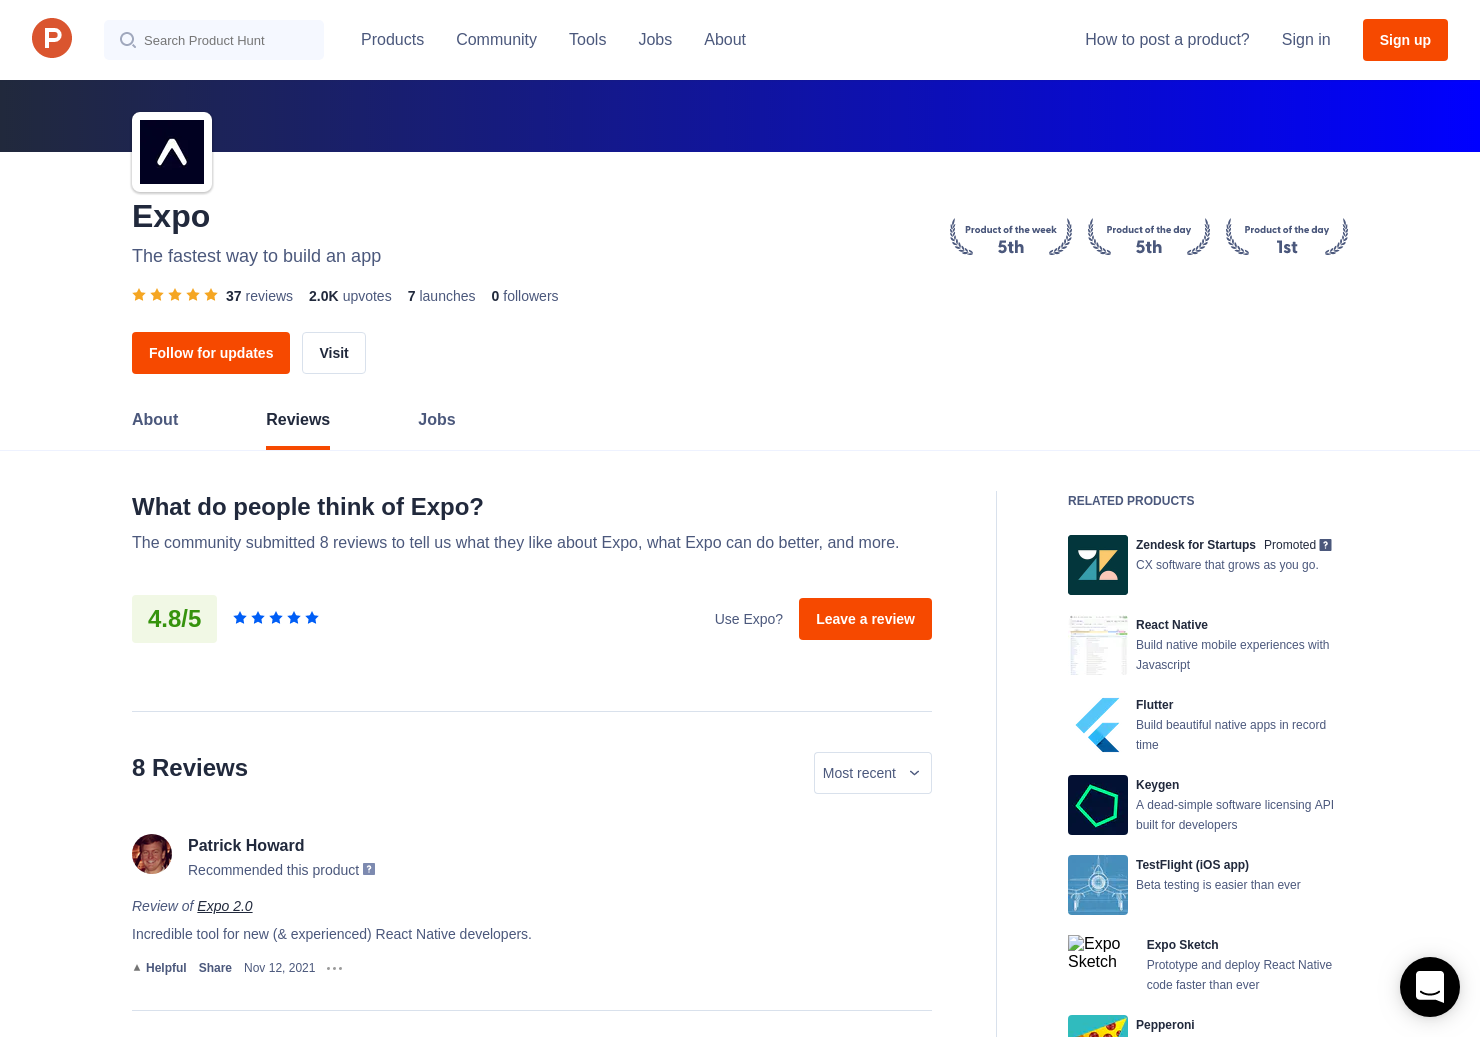 34 Expo 2 0 Reviews - Pros, Cons and Rating | Product Hunt